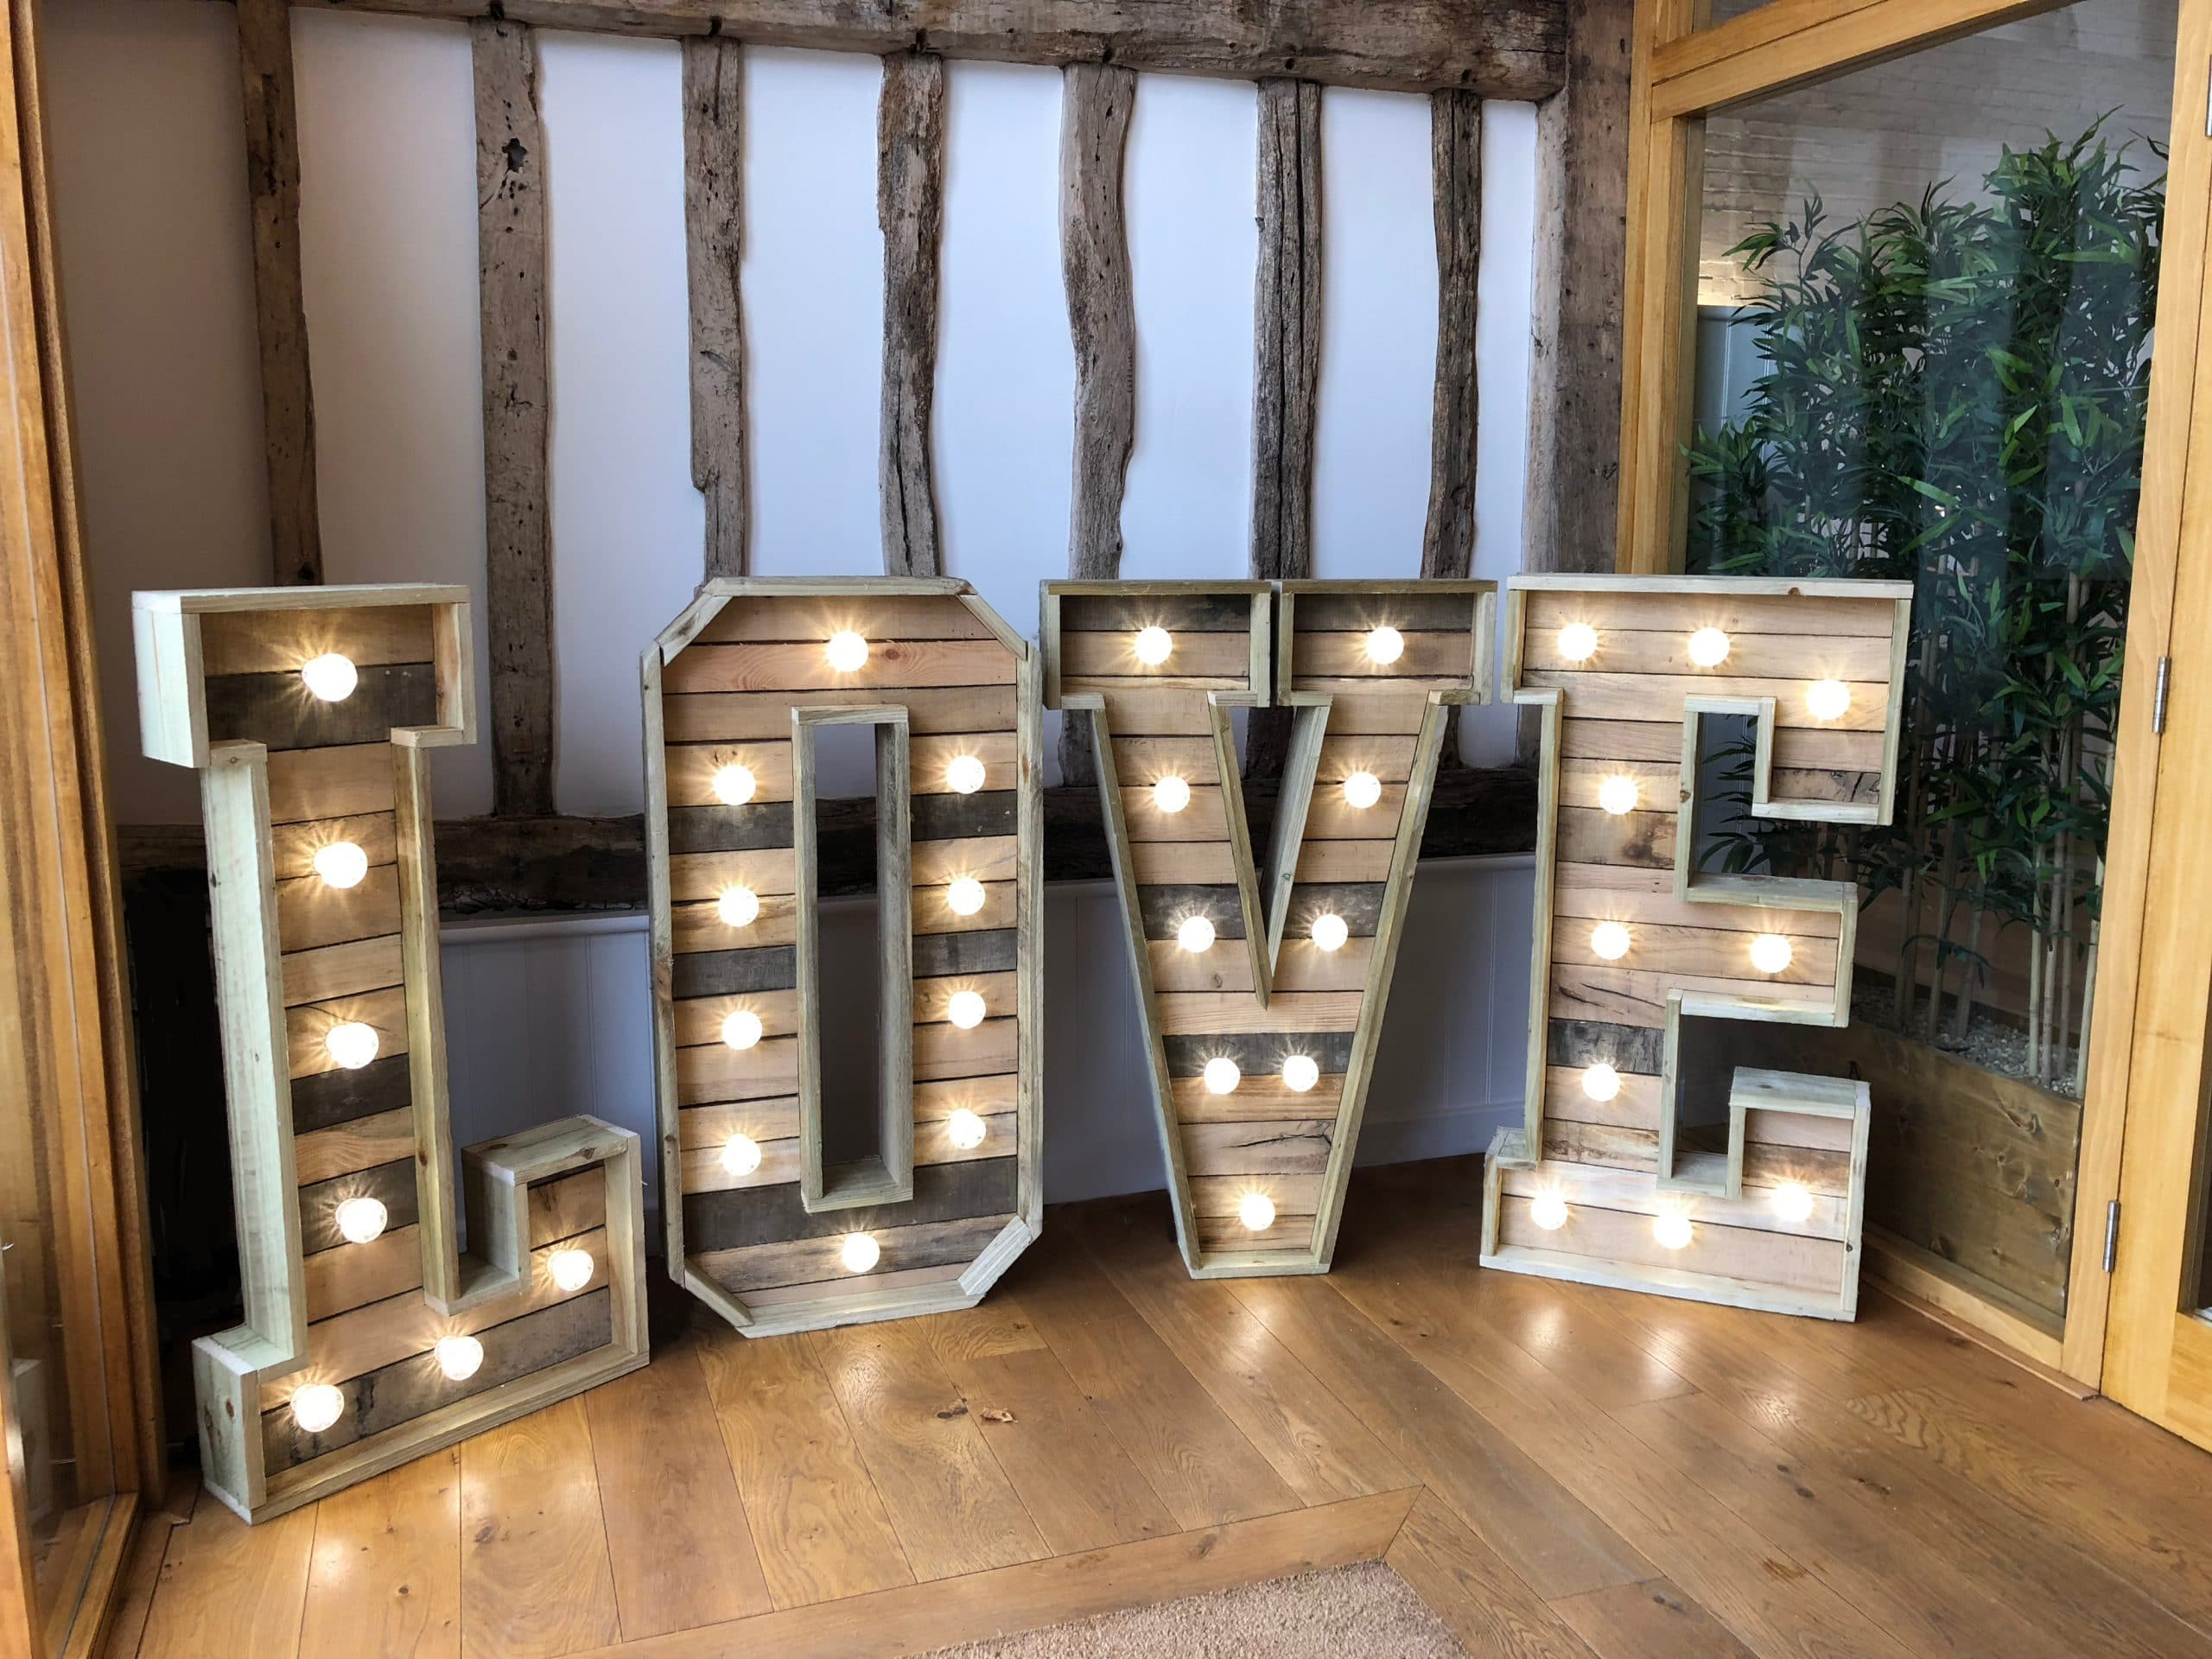 Rustic Love Letters at Alswick Barn